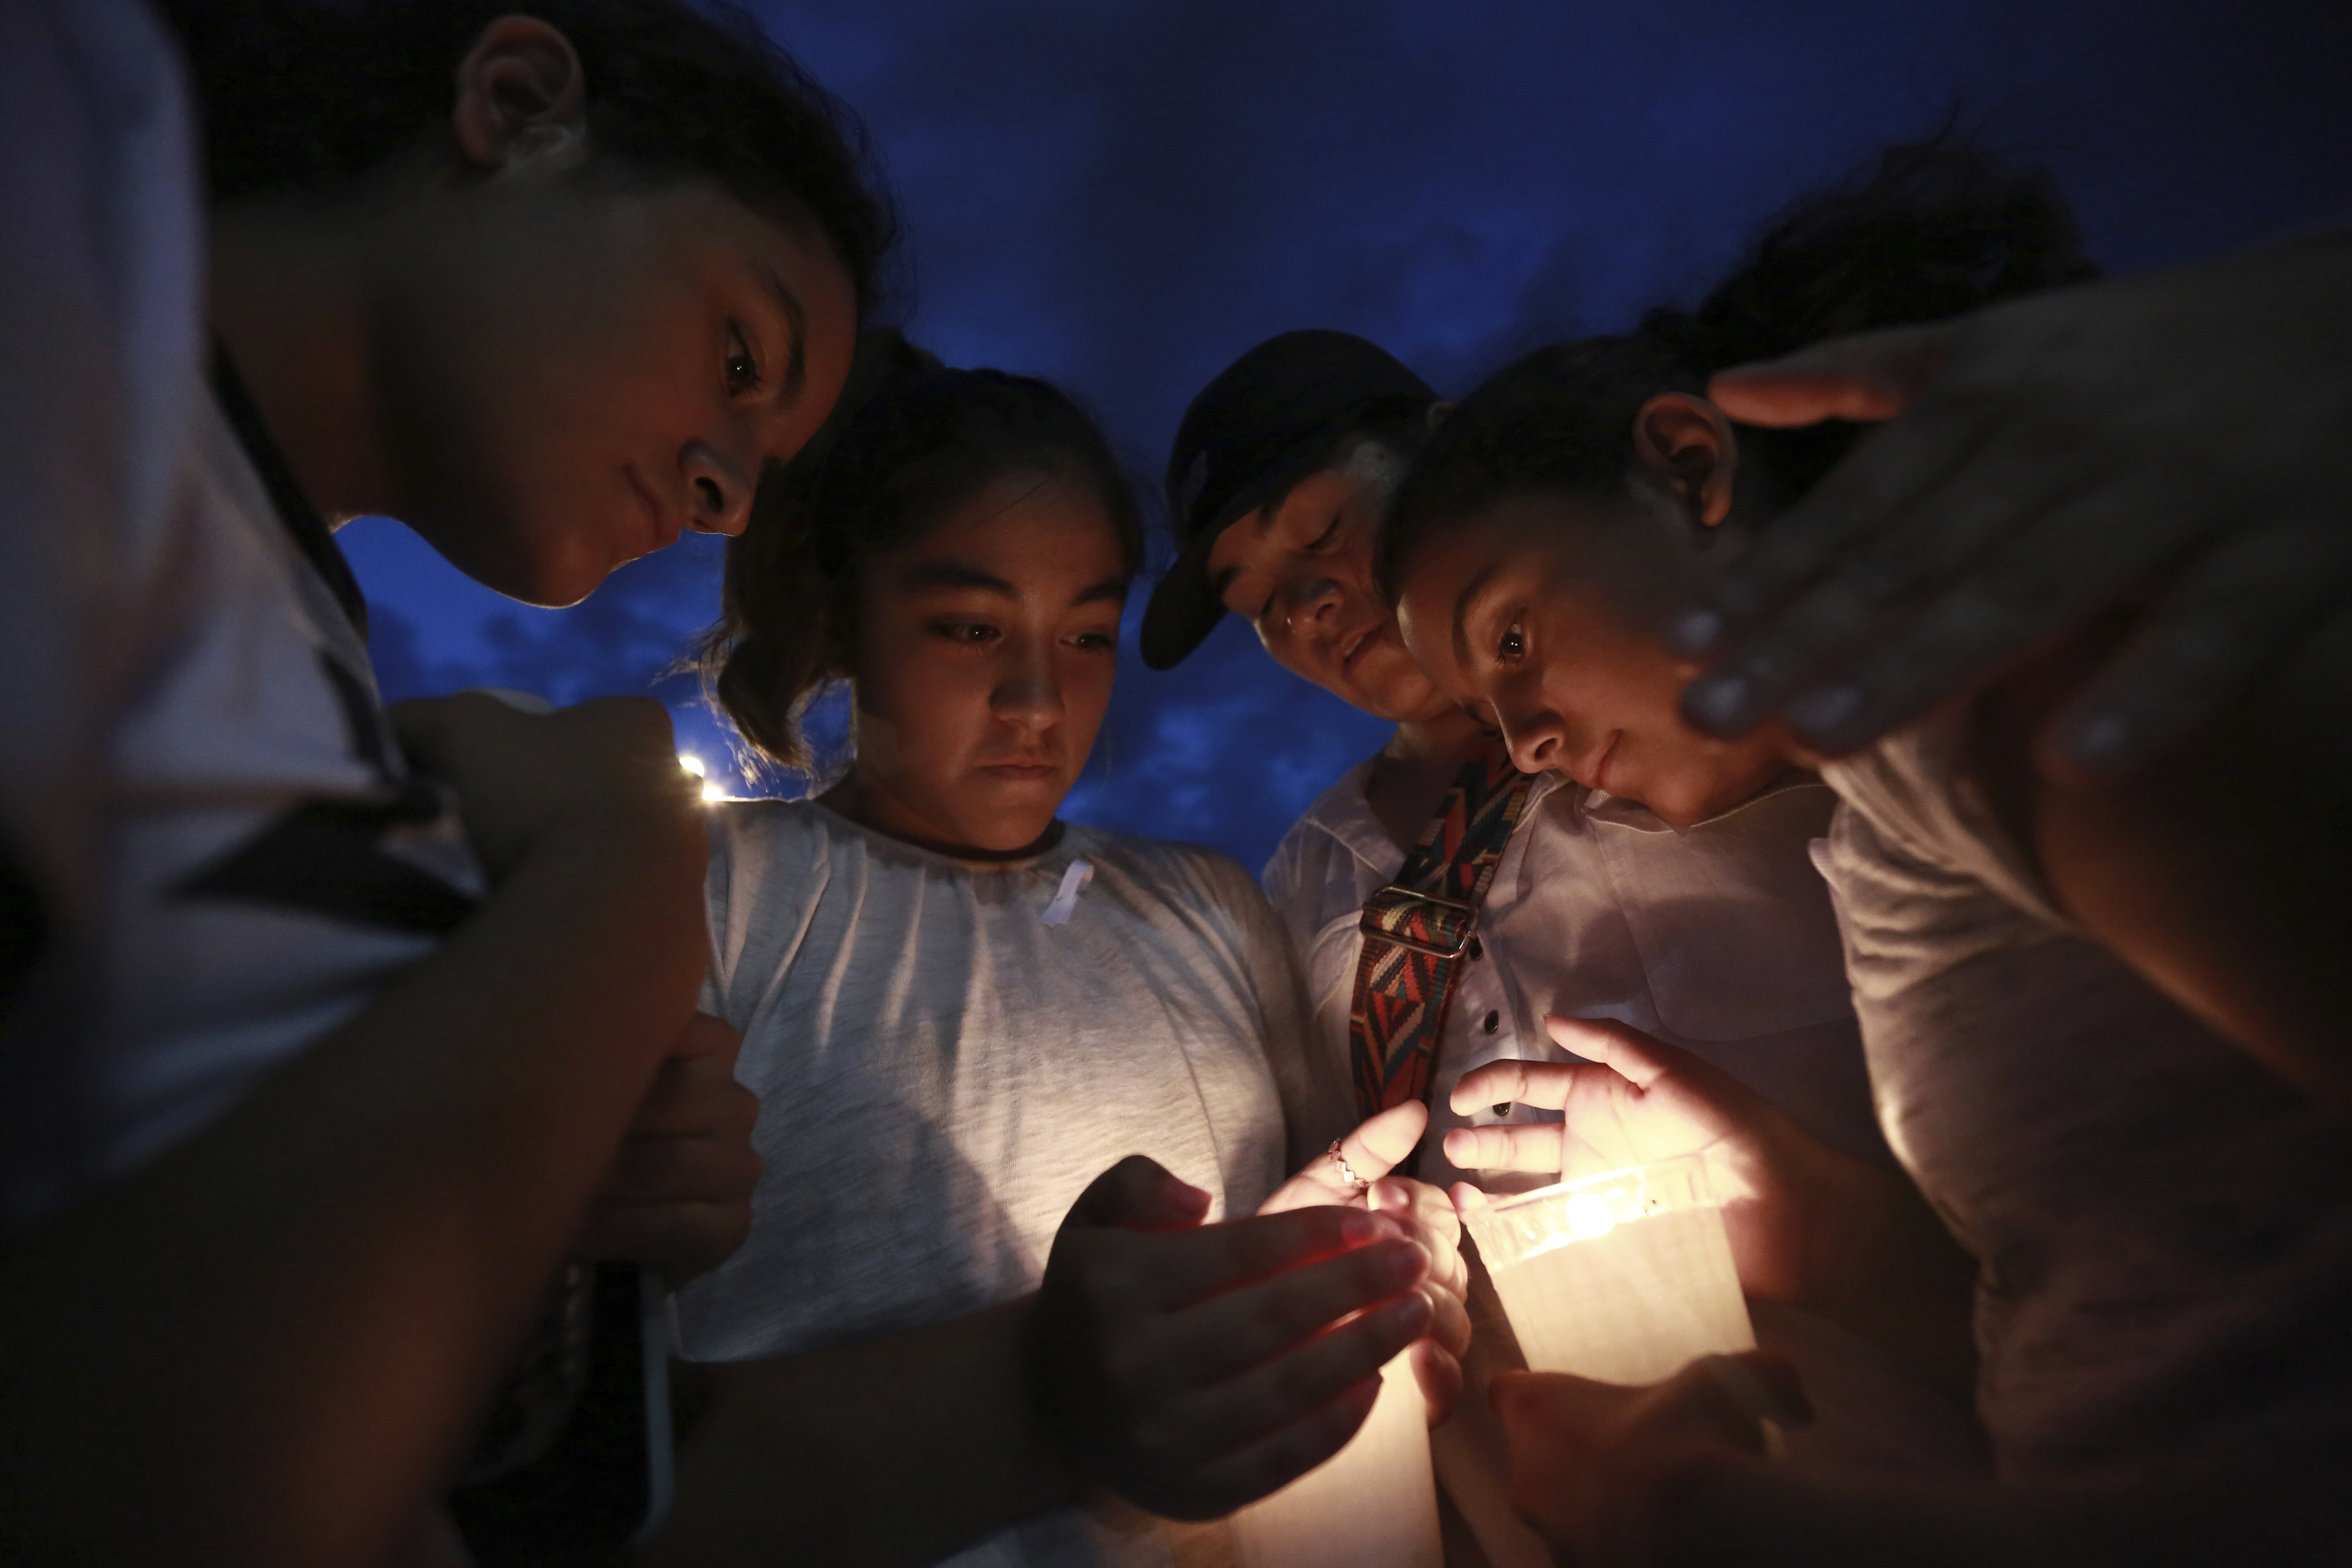 Mexicans reel from apparent hate crime in Texas